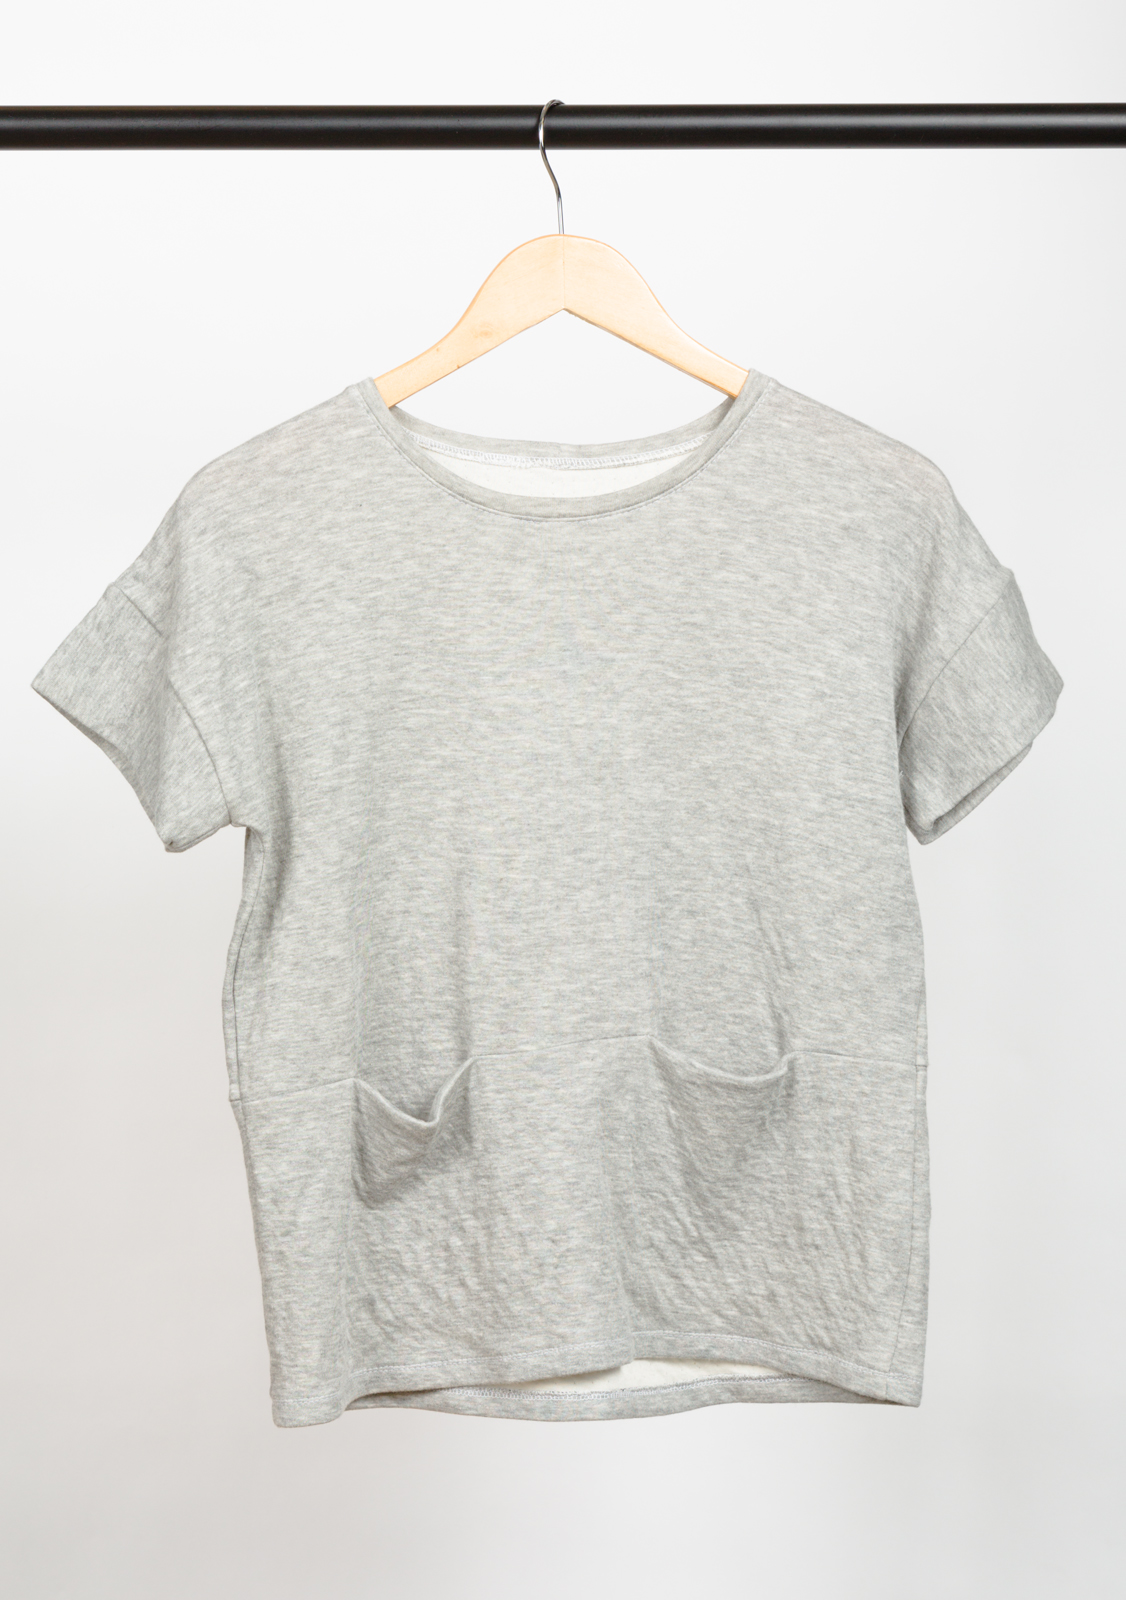 BENTO TEE  , DESIGNED BY   LIESL & CO,    MADE BY   CHRISTINE HAYNES ,  FEATURING   DOUBLE LAYER JERSEY